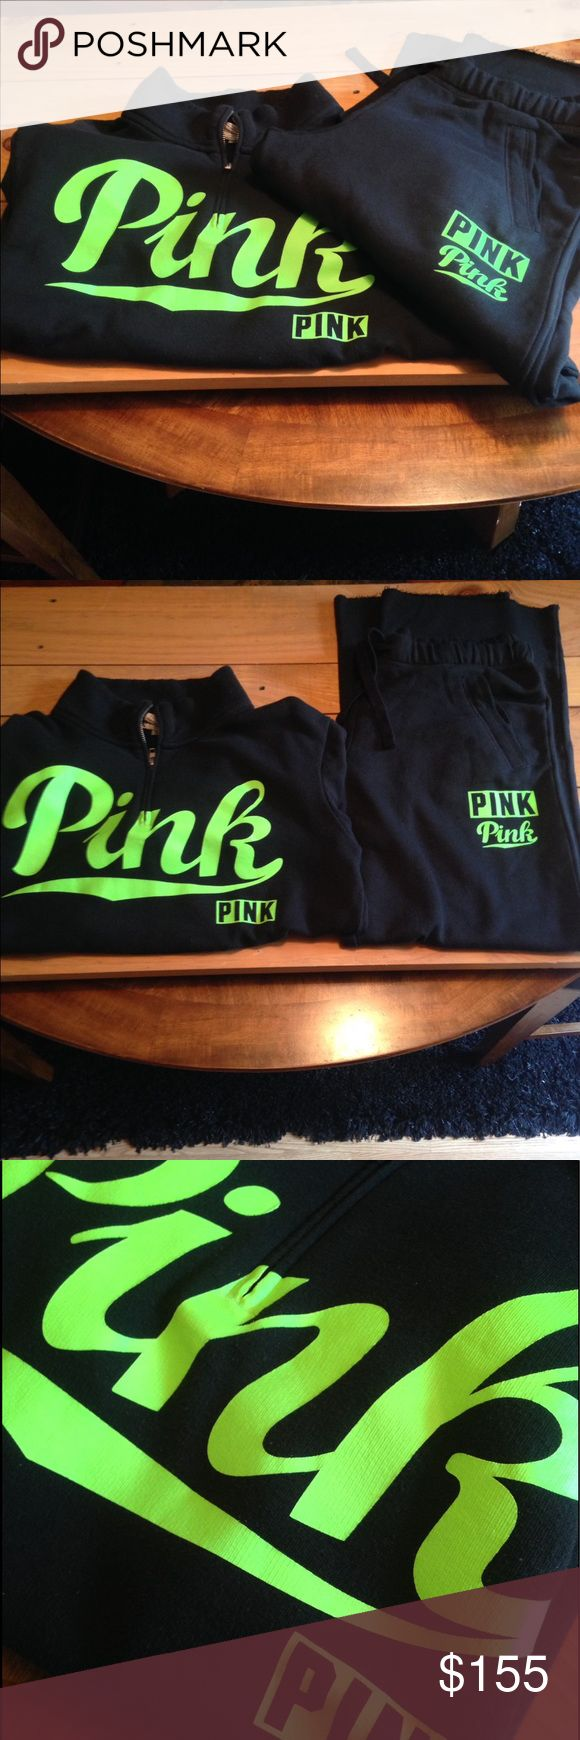 Rare VS Pink Sweatsuit Outfit Neon Green M 1/2 Zip Pullover Sweatshirt is in Excellent Preowned condition. Boyfriend Sweatpants are New without Tags. No flaws or discolorations, from a smoke free home. Neon Green Pink Logo Sweatsuit both size Medium. PINK Victoria's Secret Other